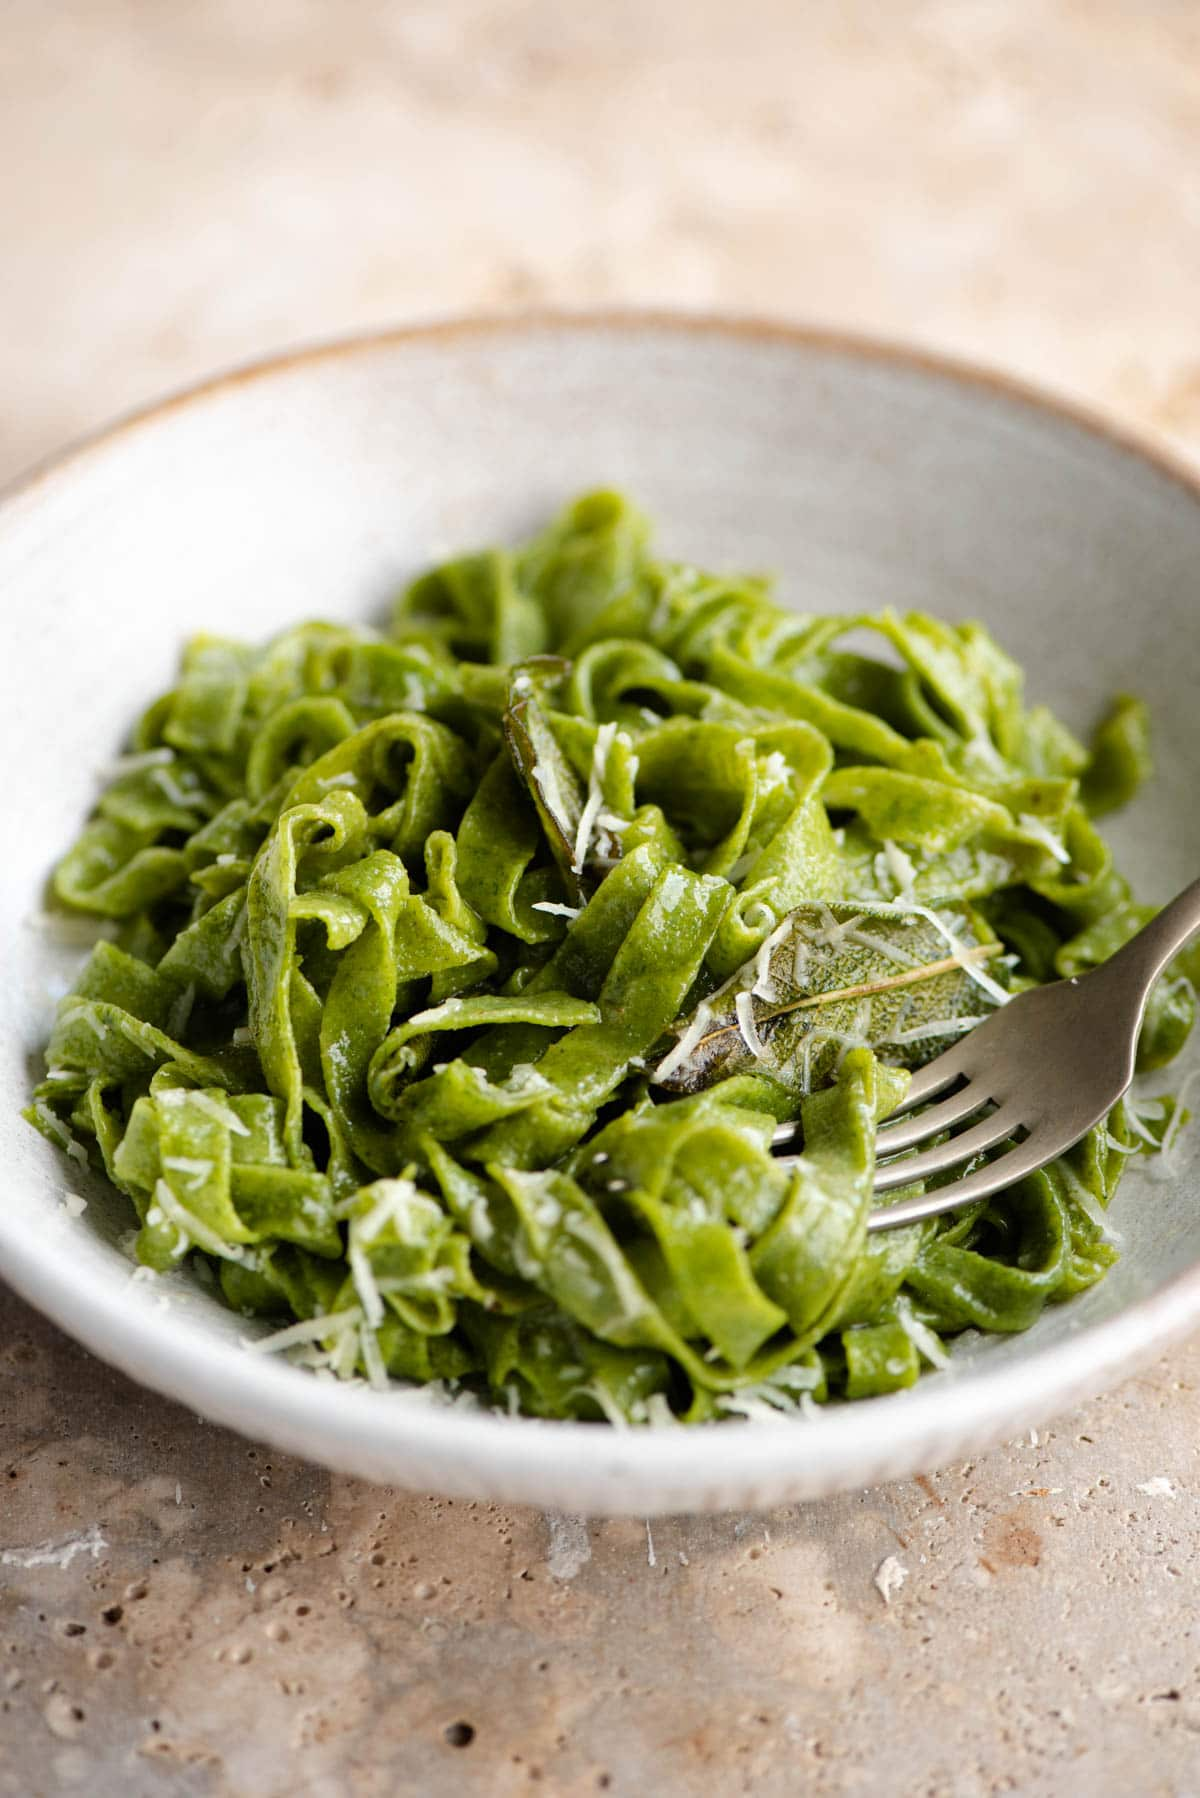 A close up of cooked spinach pasta in a bowl